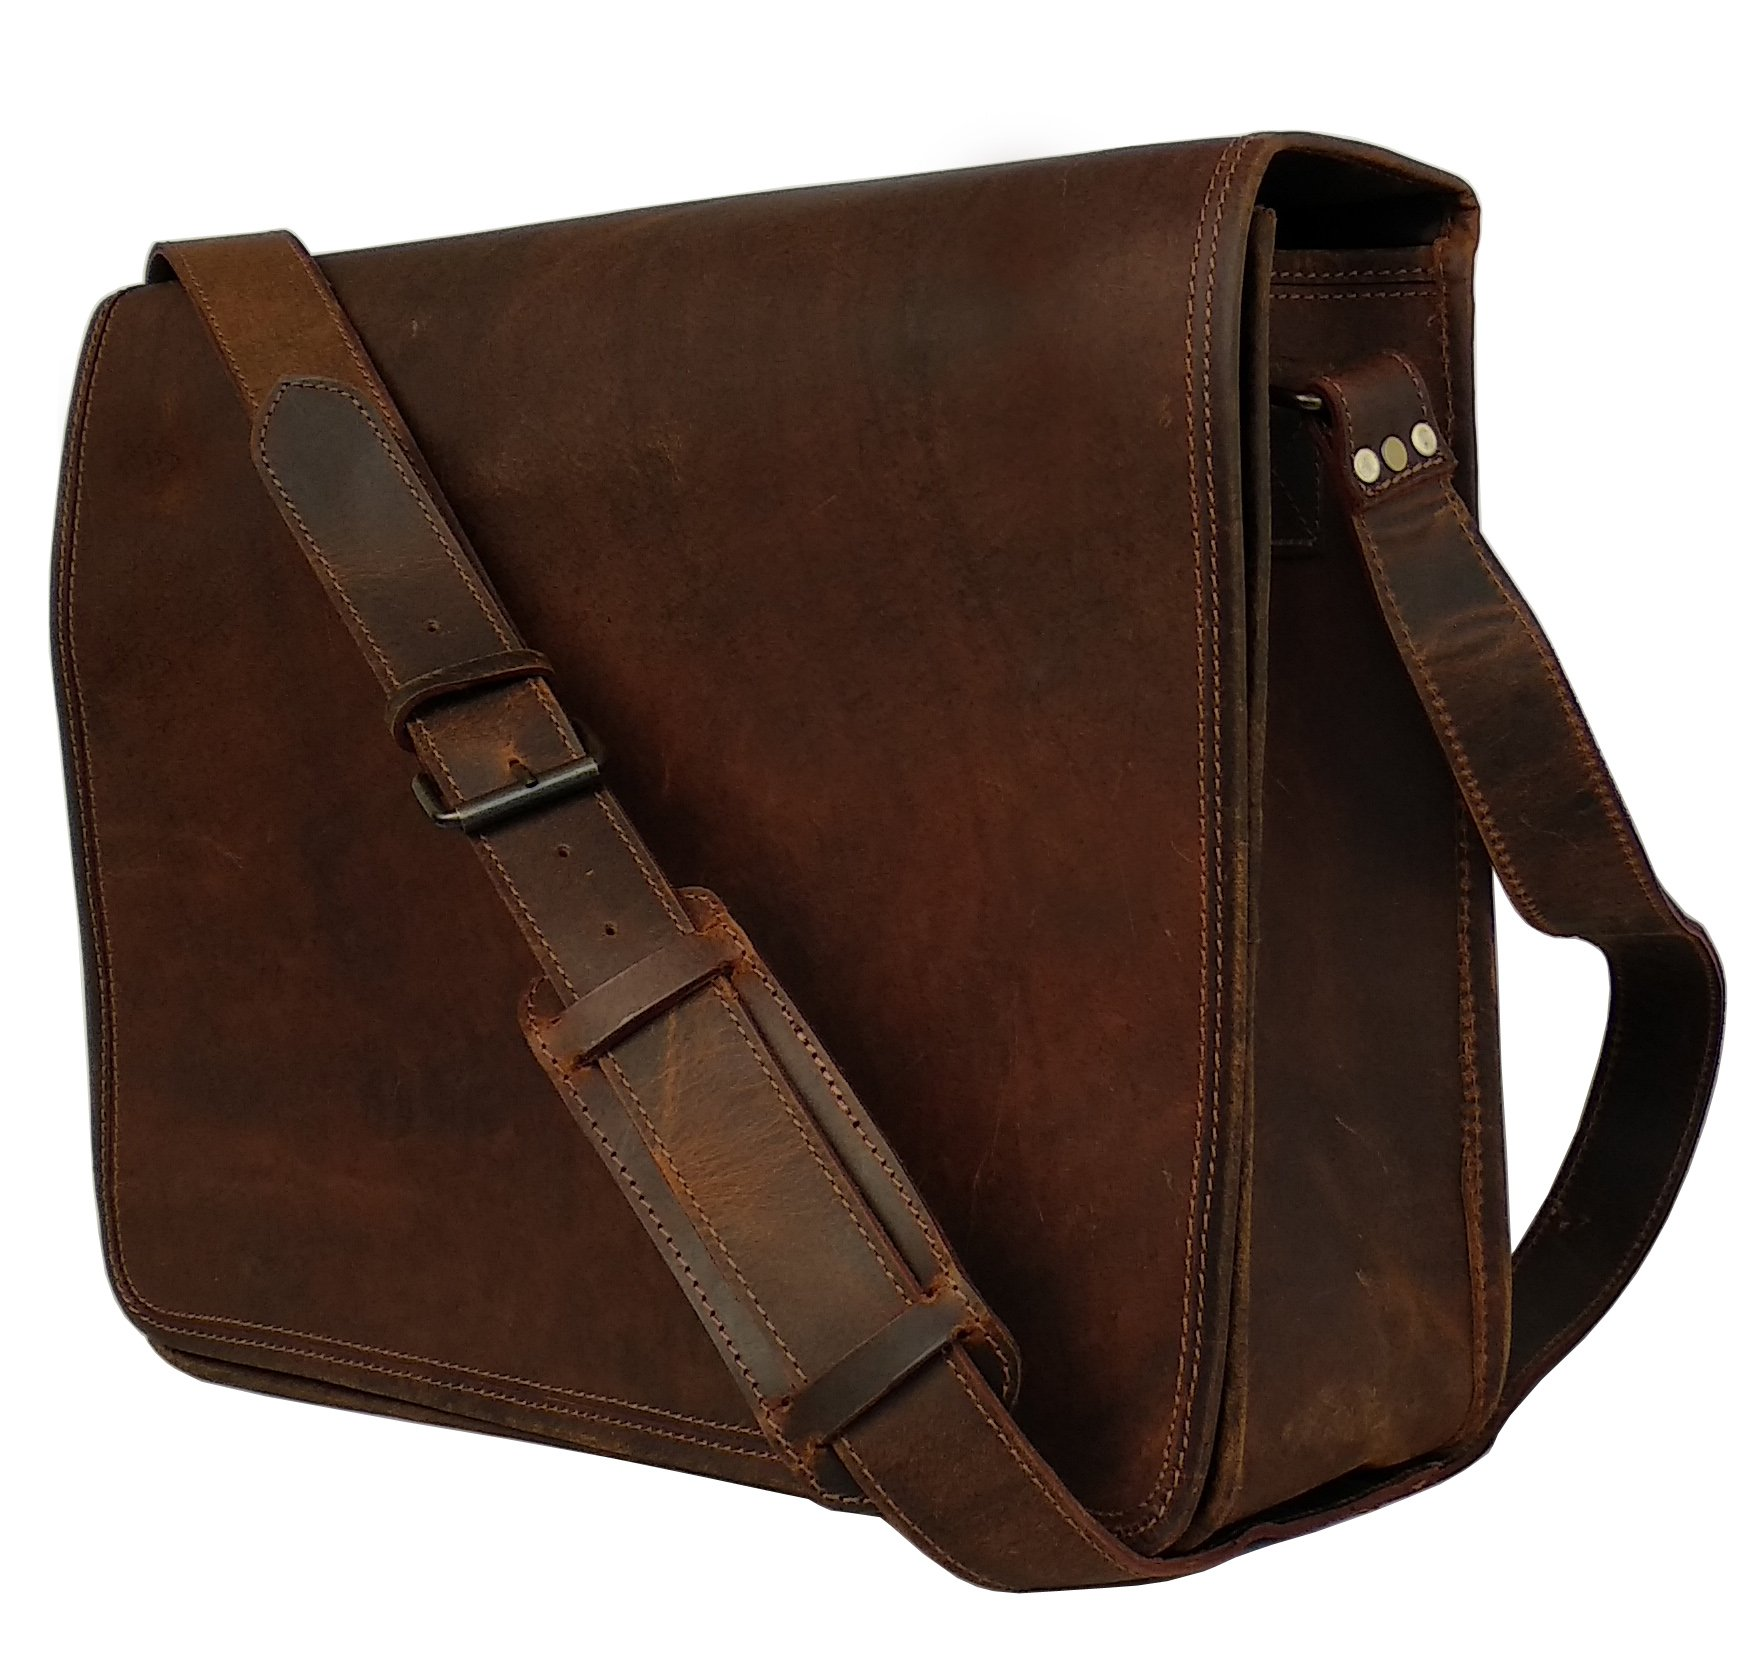 18 Inch Leather Vintage Rustic Crossbody Messenger Courier Satchel Bag Gift Men Women ~ Business Work Briefcase Carry Laptop Computer Book Handmade Rugged & Distressed ~ Everyday Office College School